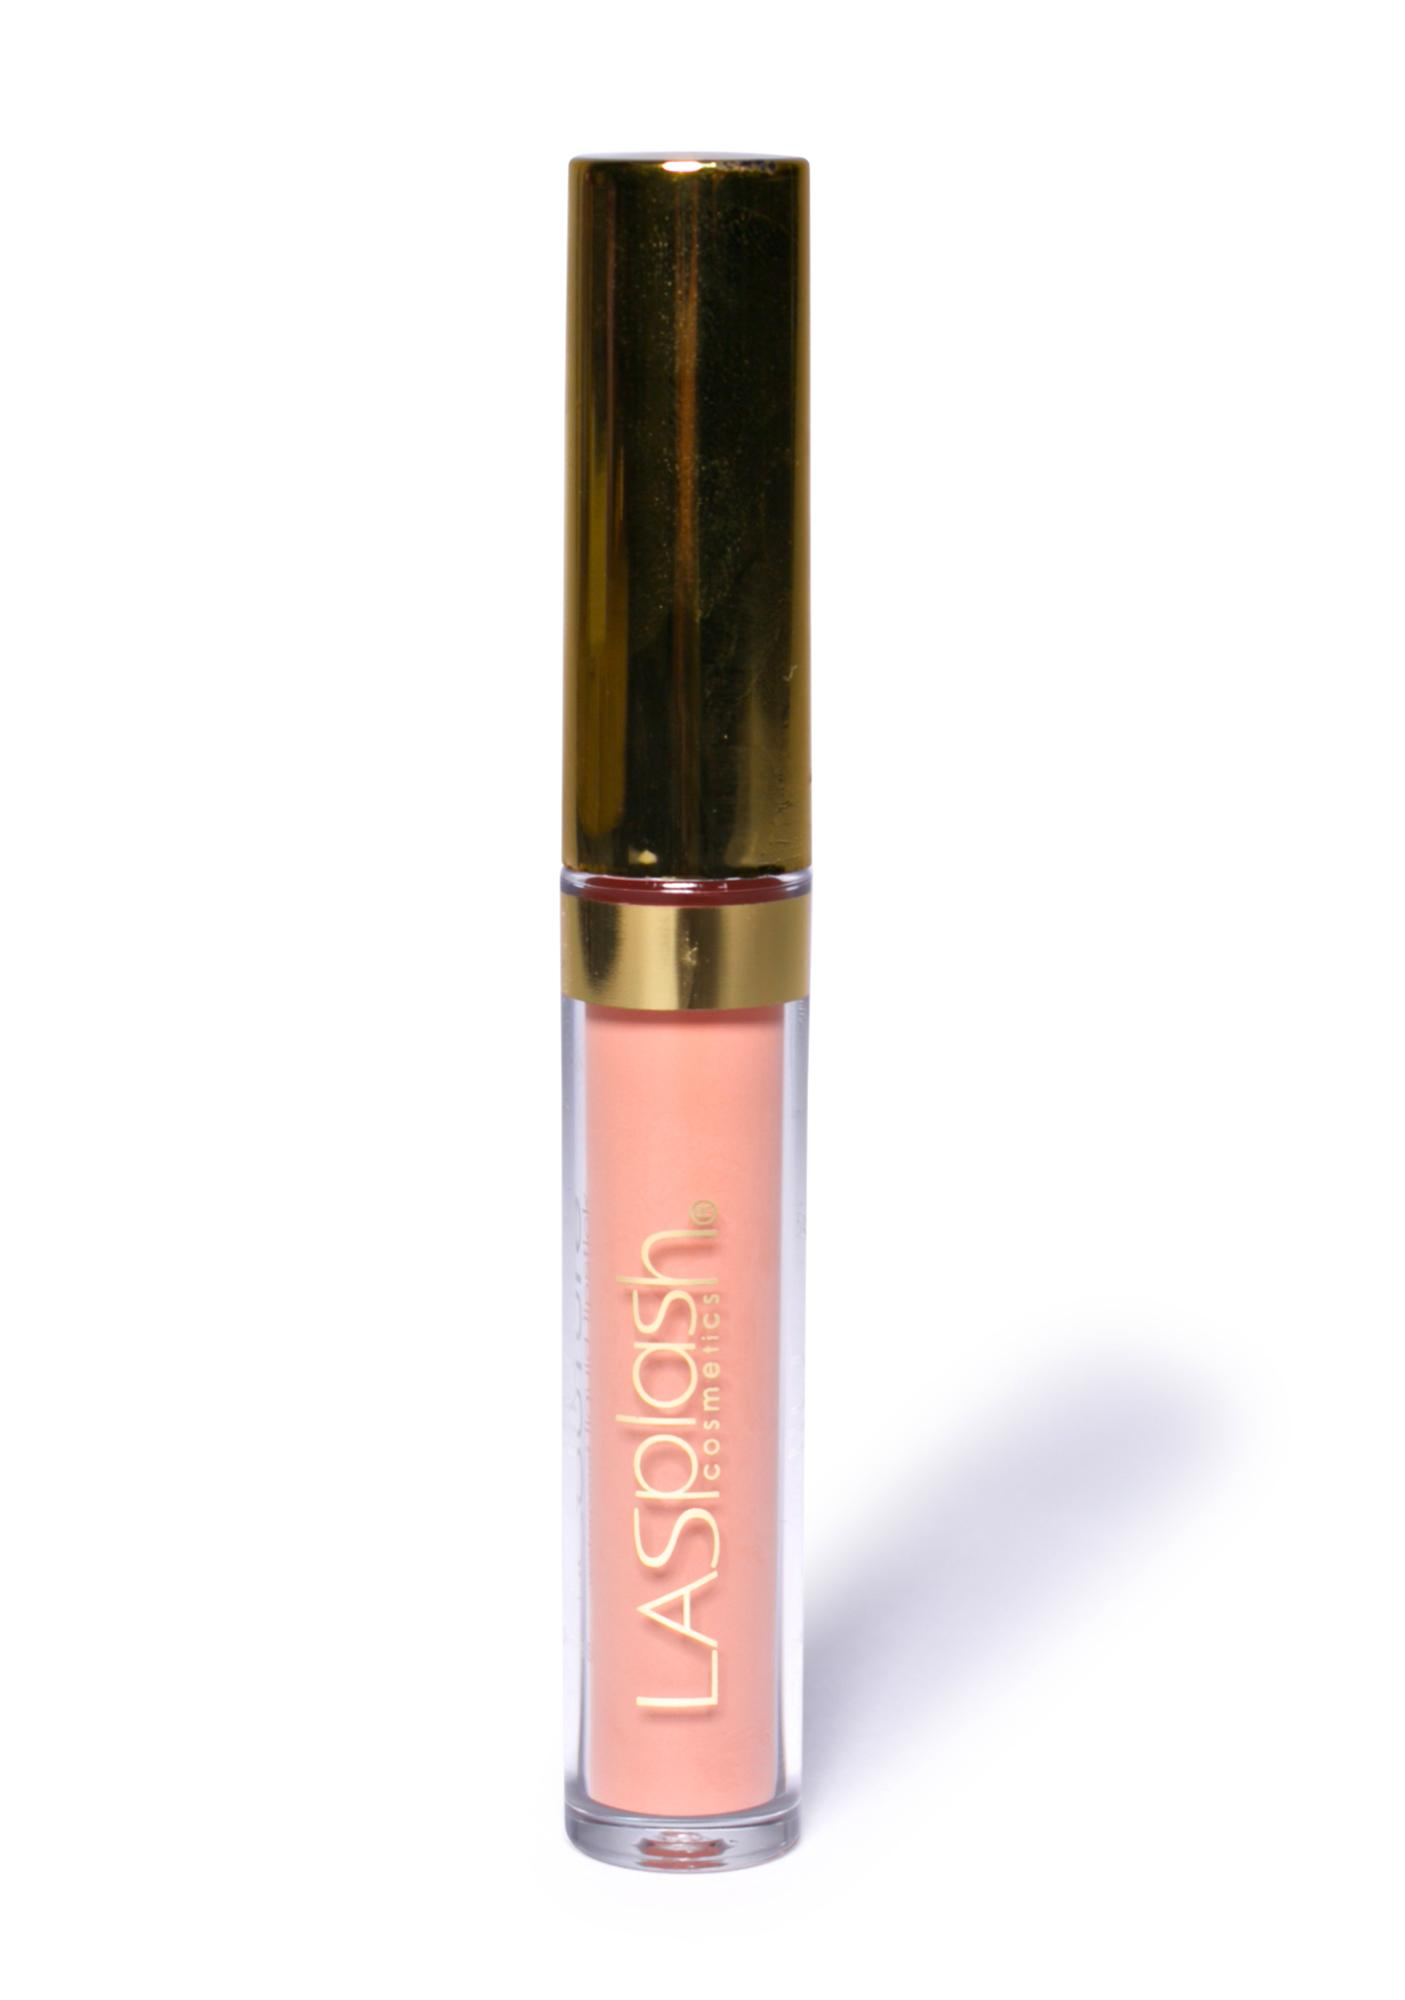 LA Splash Innocent Vixen Liquid Lipstick